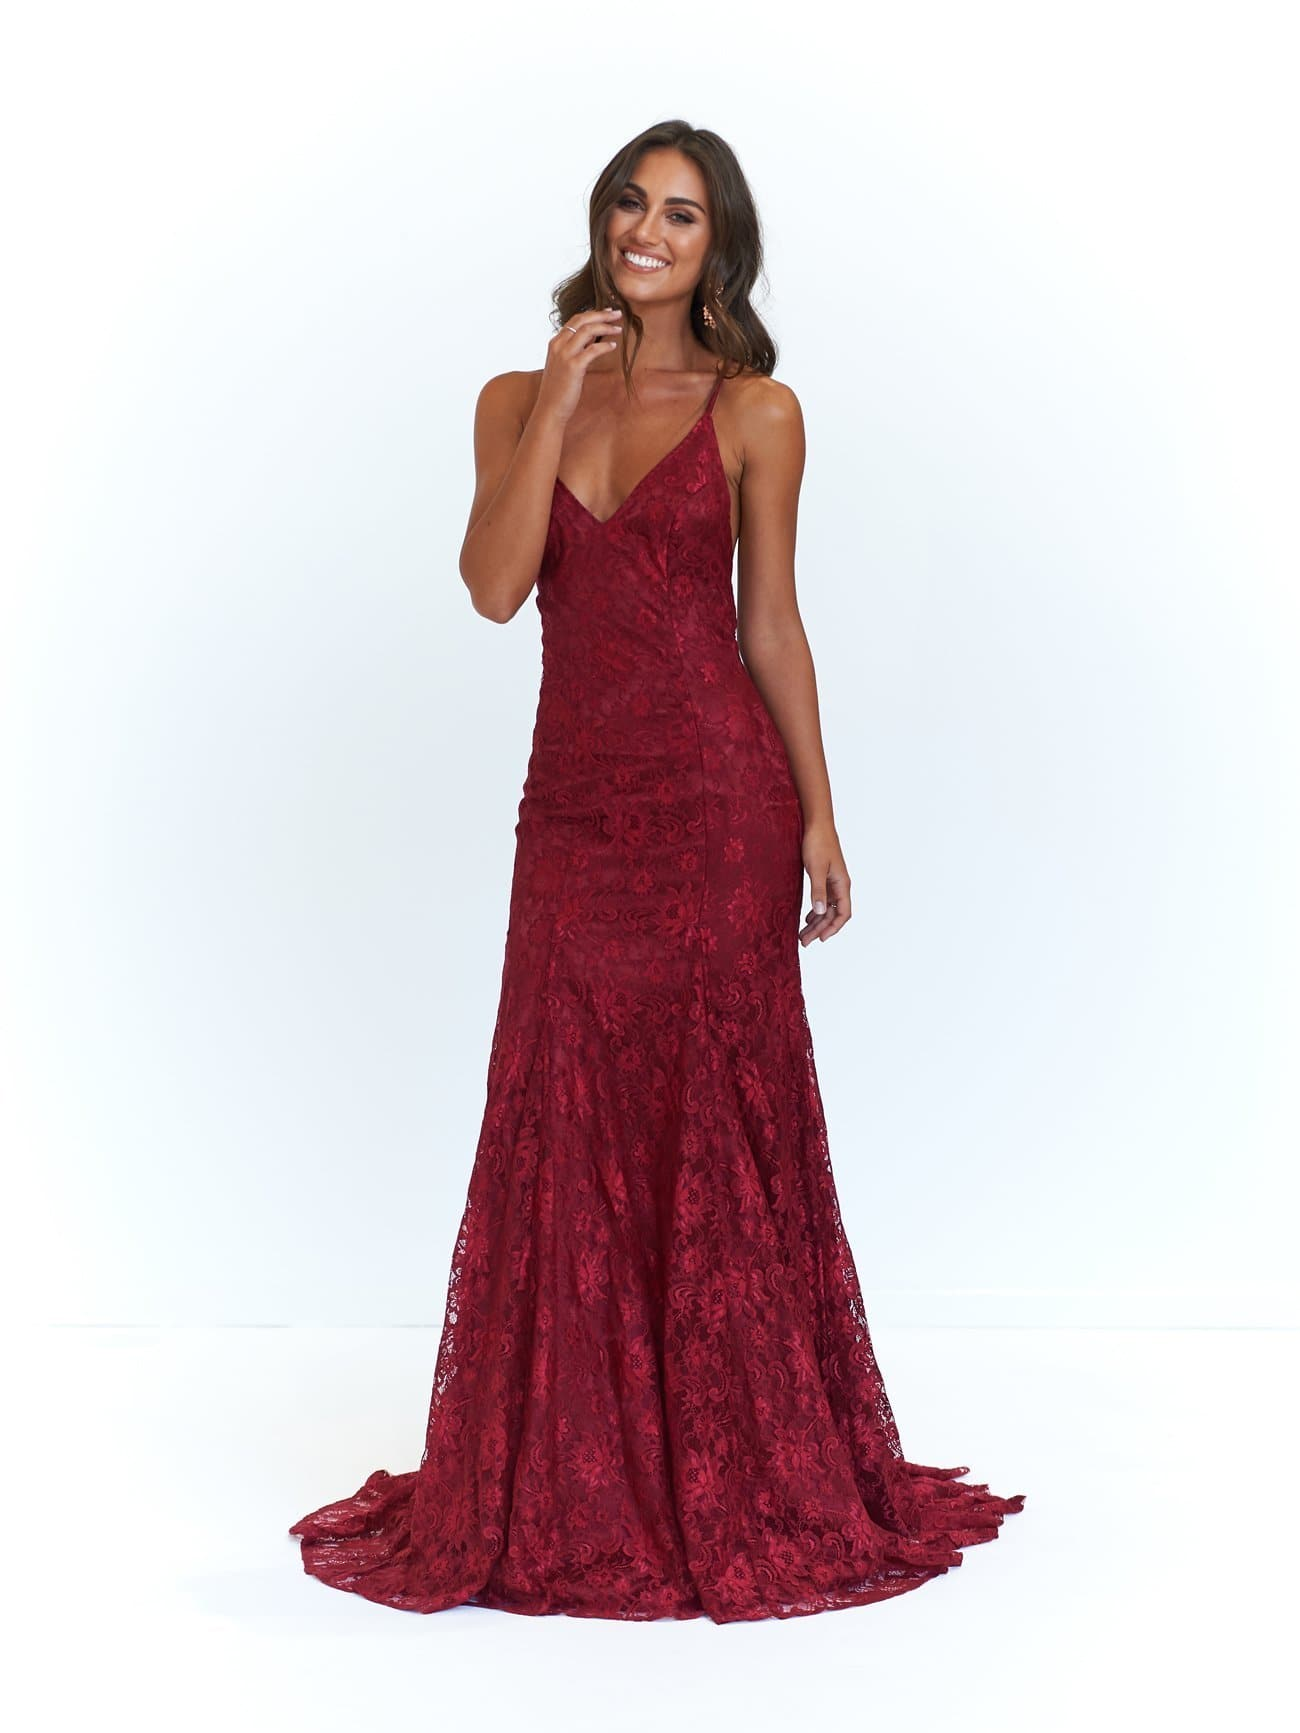 A&N Luxe Aisha Gown - Burgundy Lace Up Mermaid Gown with Low Back